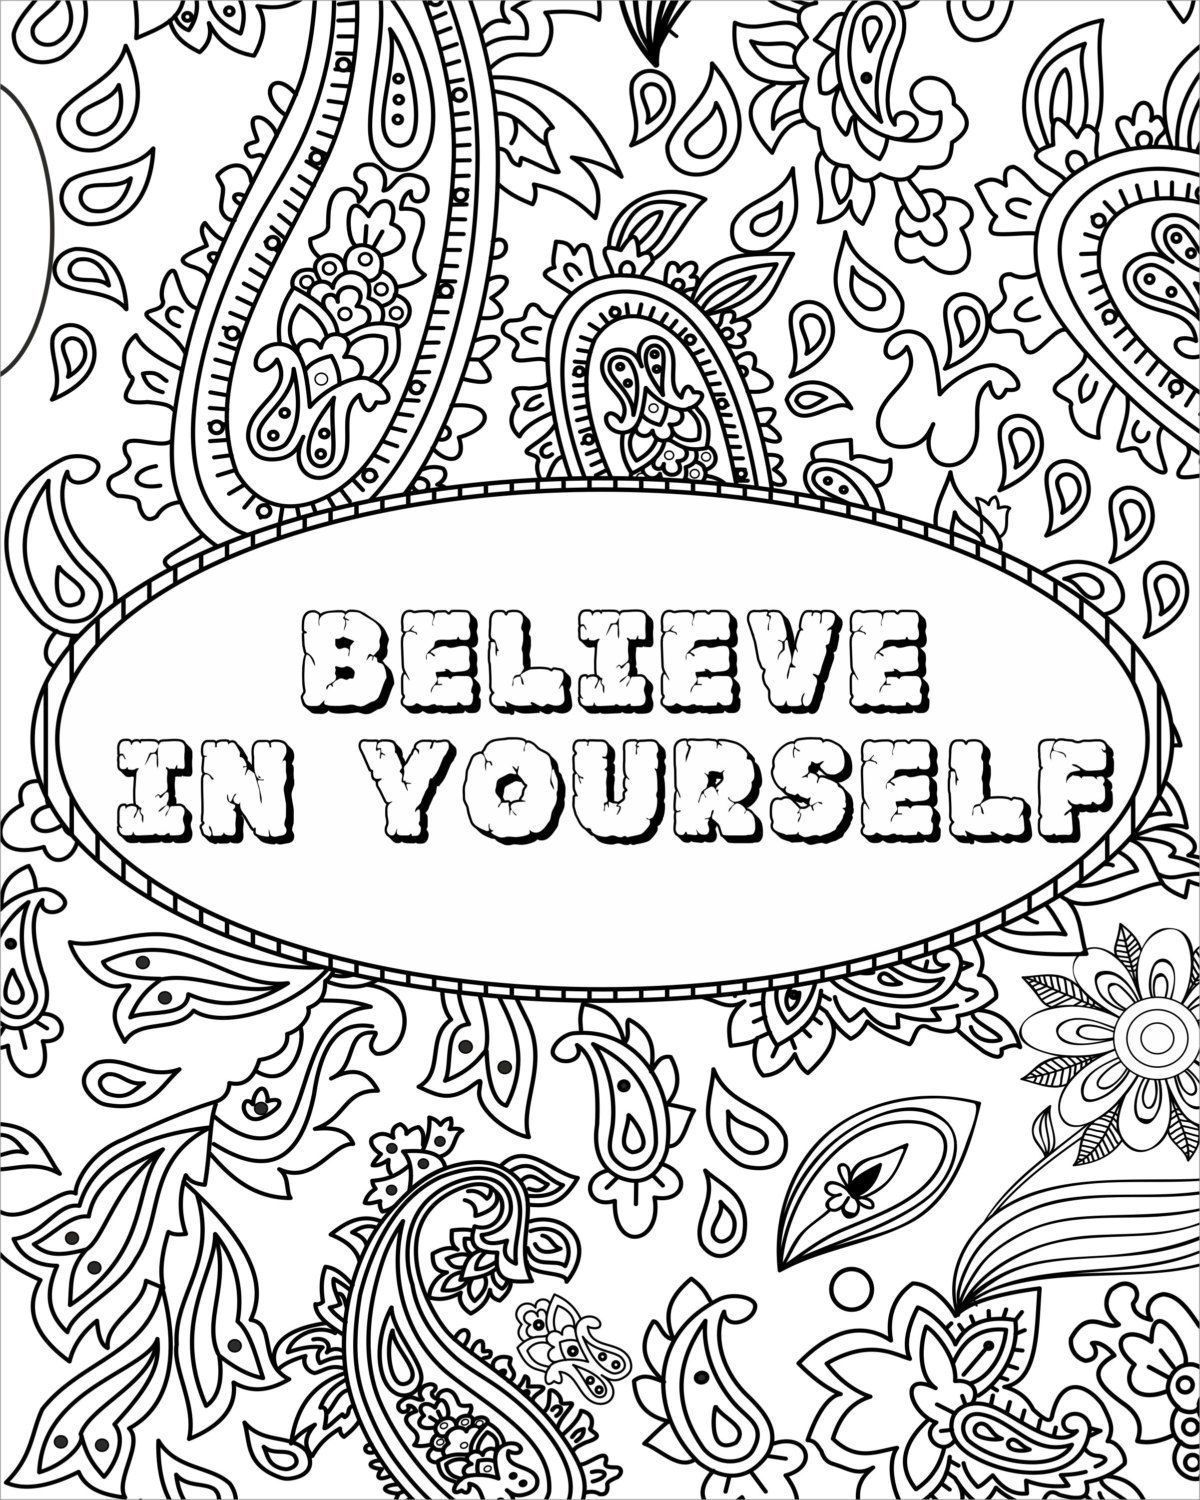 coloring pages inspirational inspirational art coloring pages coloring pages pages inspirational coloring